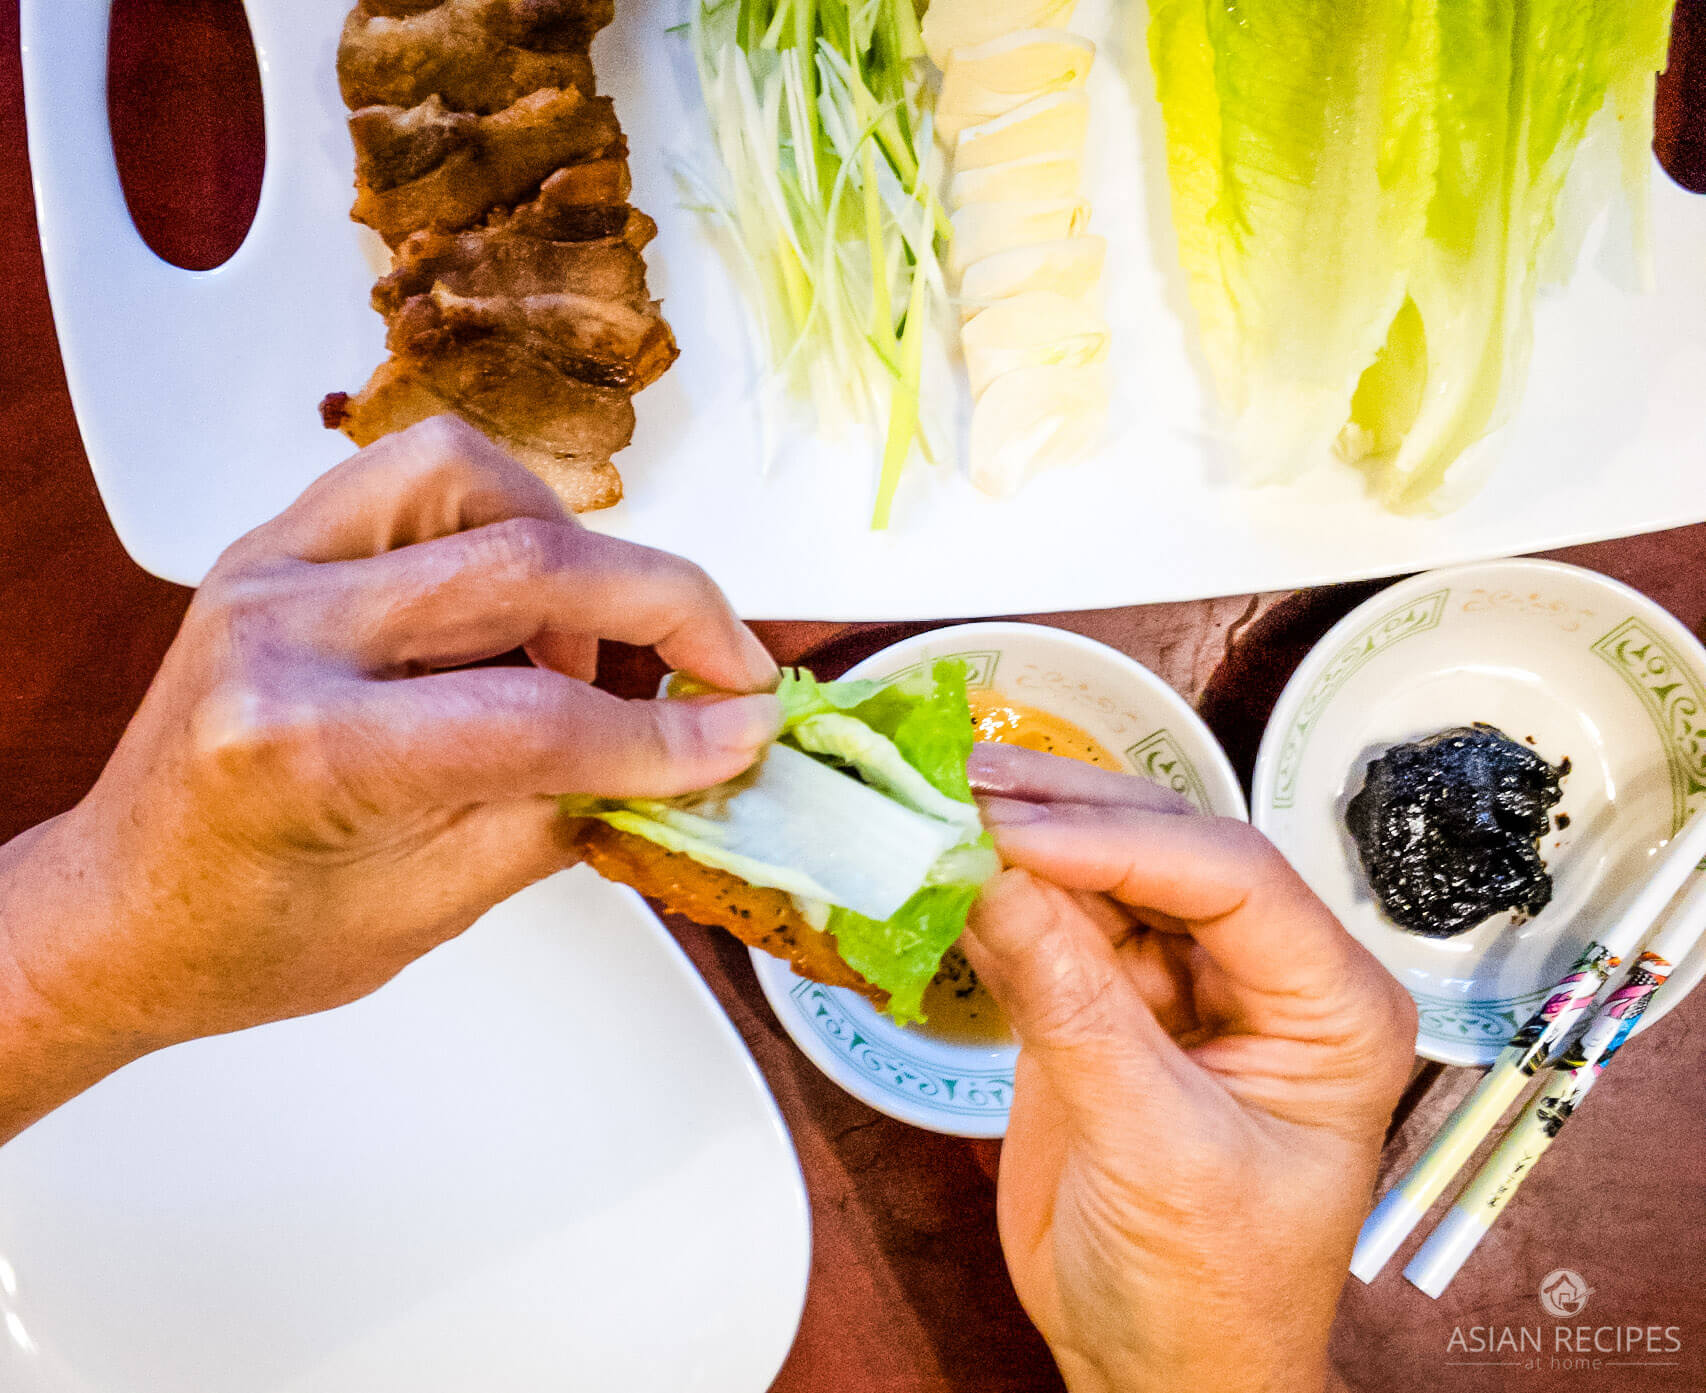 This is one of the more popular Korean BBQ options which consists of pan-fried sliced pork belly, fresh romaine lettuce leaves, sliced garlic, sesame oil, and gochujang.